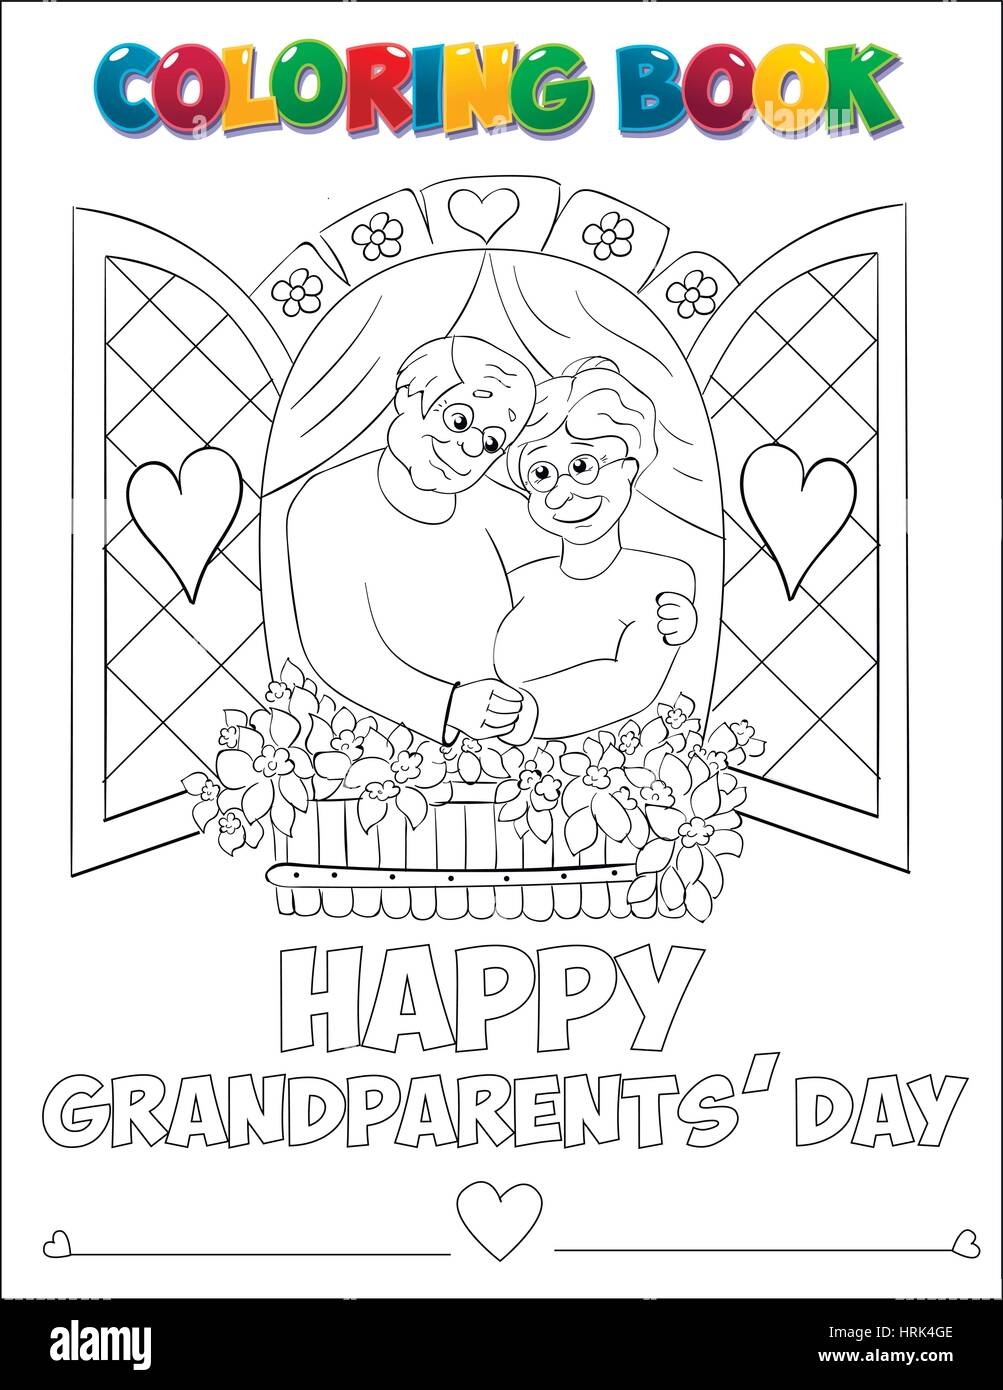 Coloring book Grandparents Day - vector illustration. - Stock Image